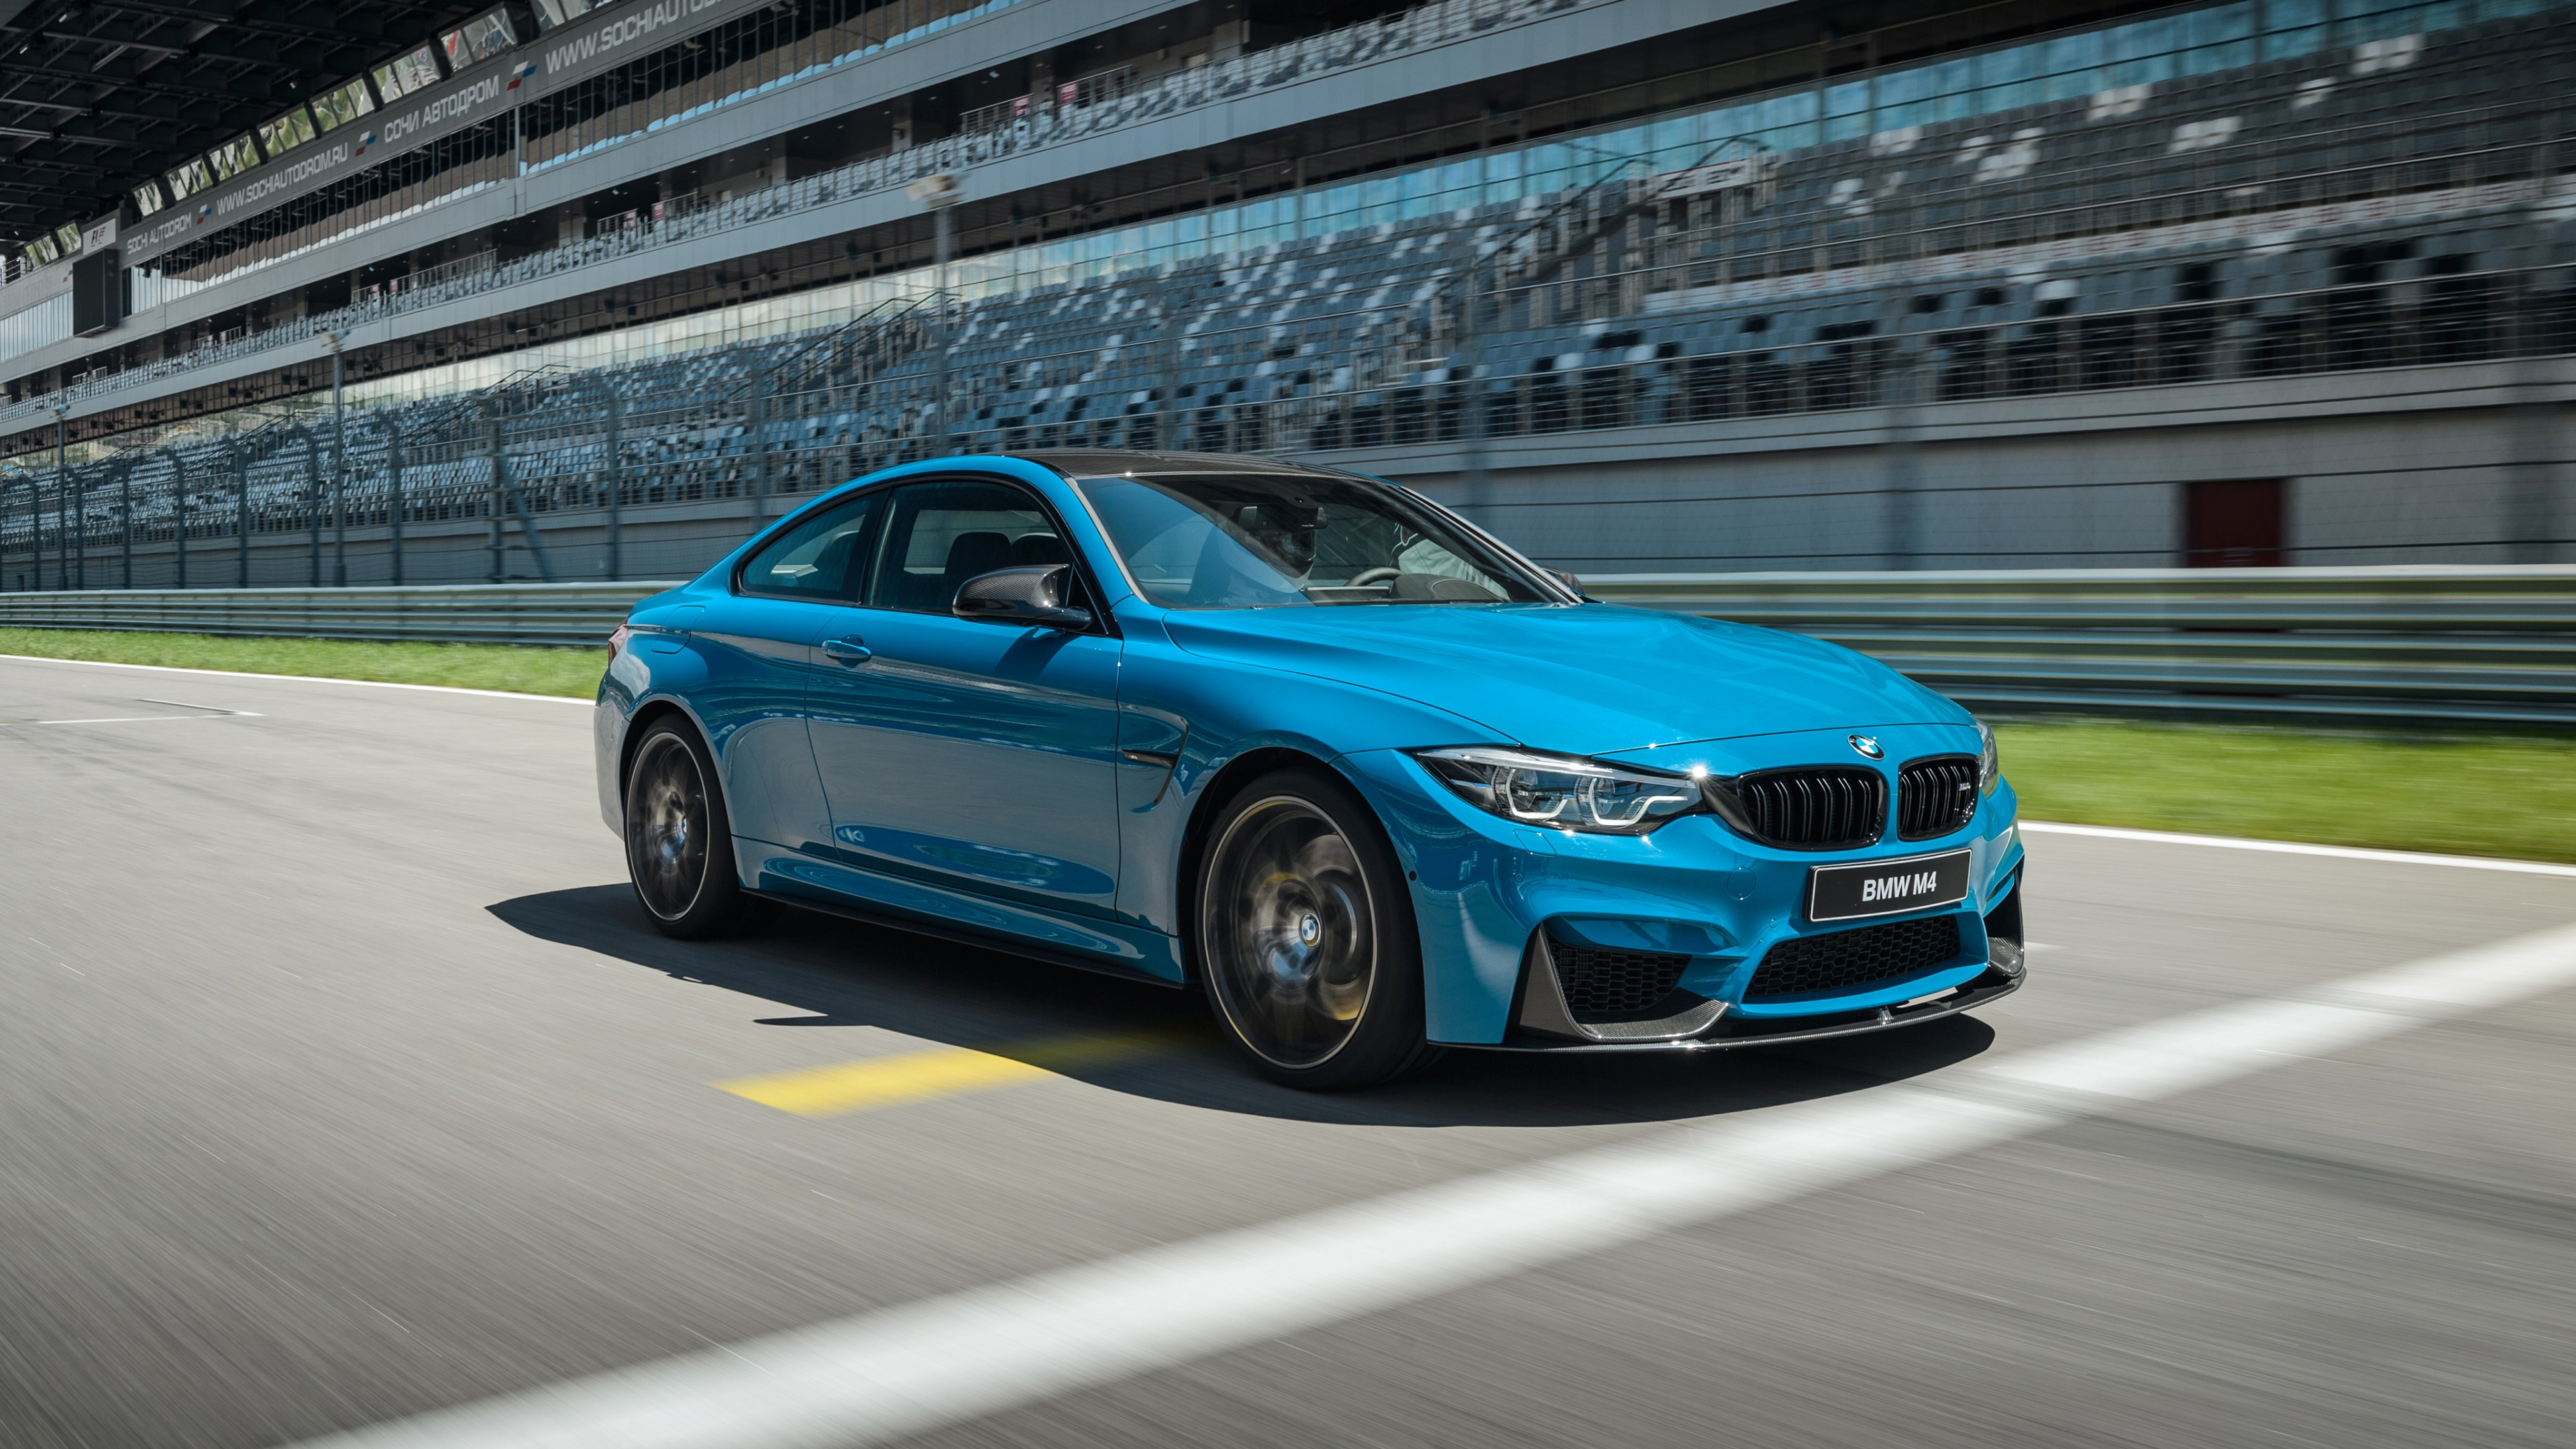 2017 BMW M4 Coupe Competition Wallpaper | HD Car ...